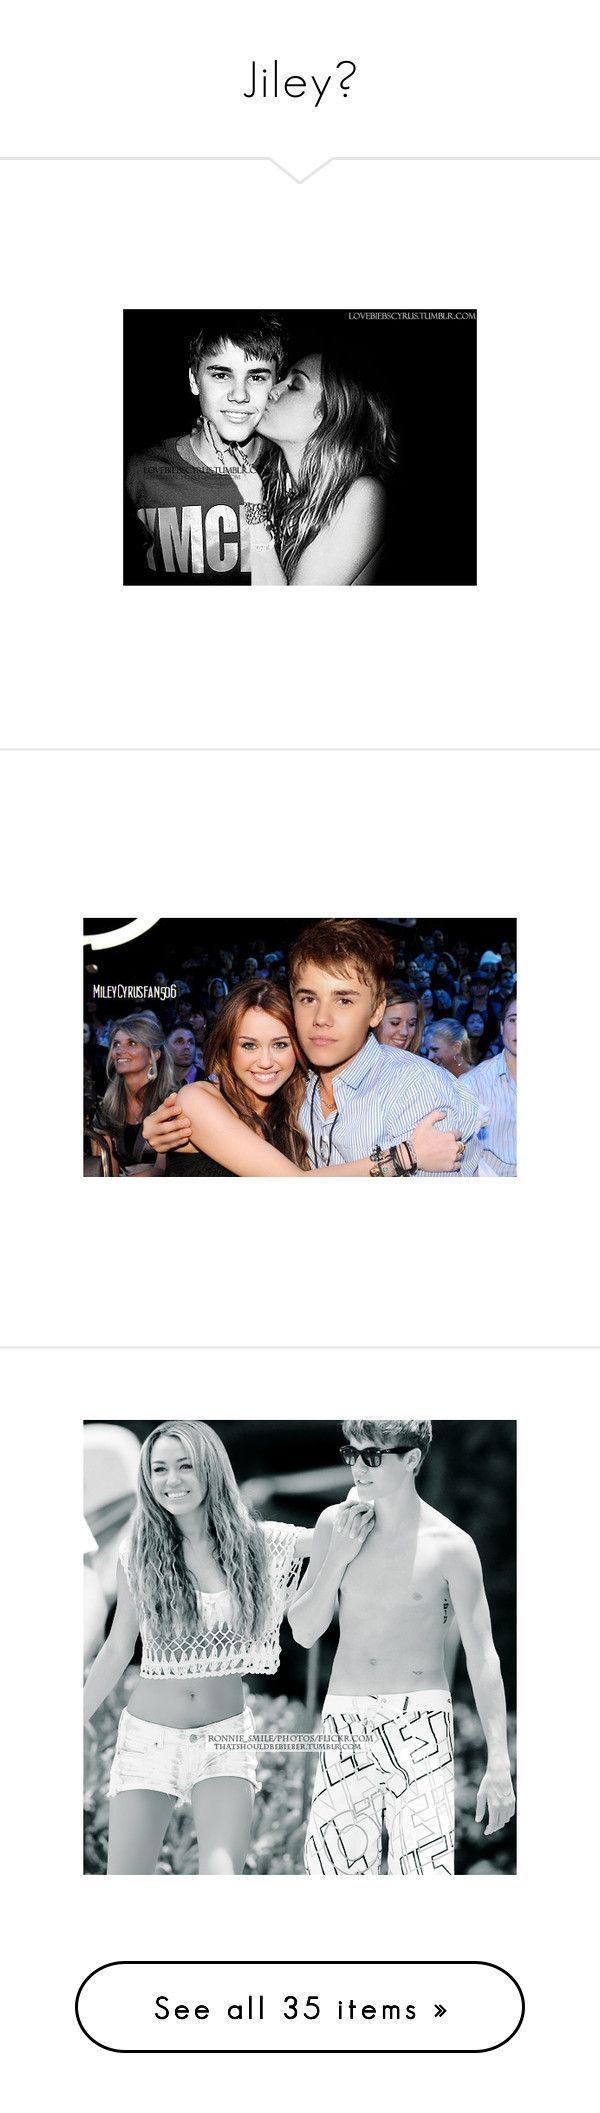 """Jiley♥"" by hannahlovesthebiebs ❤ liked on Polyvore featuring jiley, justin bieber, miley cyrus, celebrities, pictures, celebs, justin, miley, justin & miley and couples"